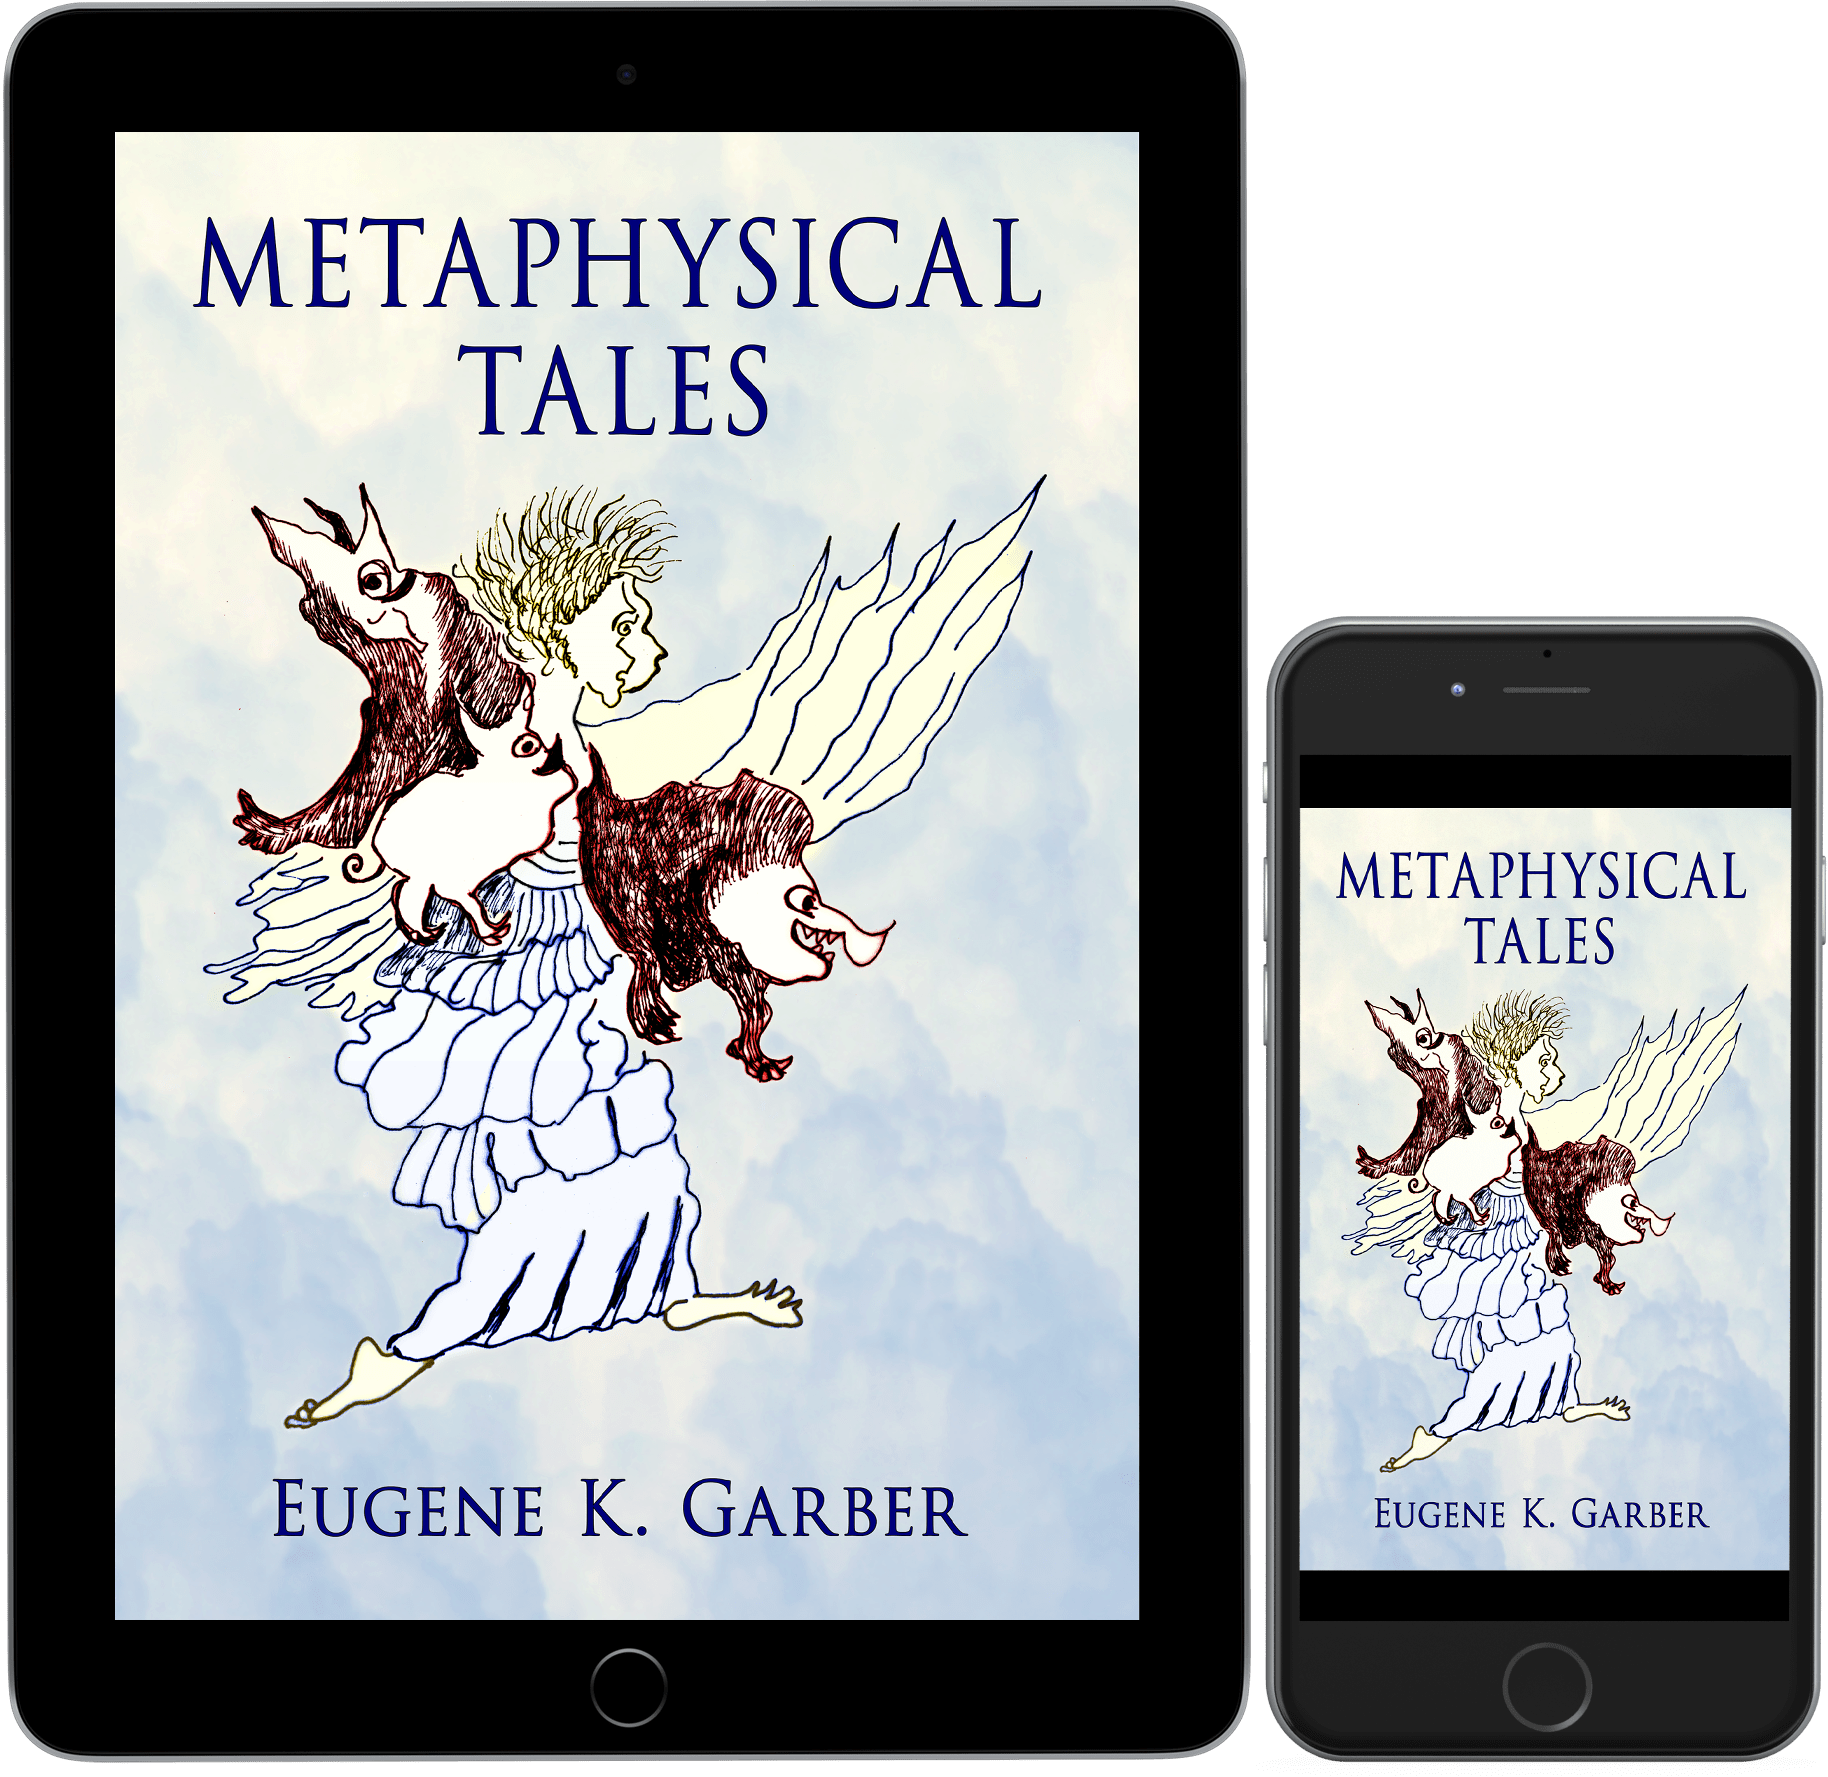 Metaphysical Tales by Eugene K. Garber